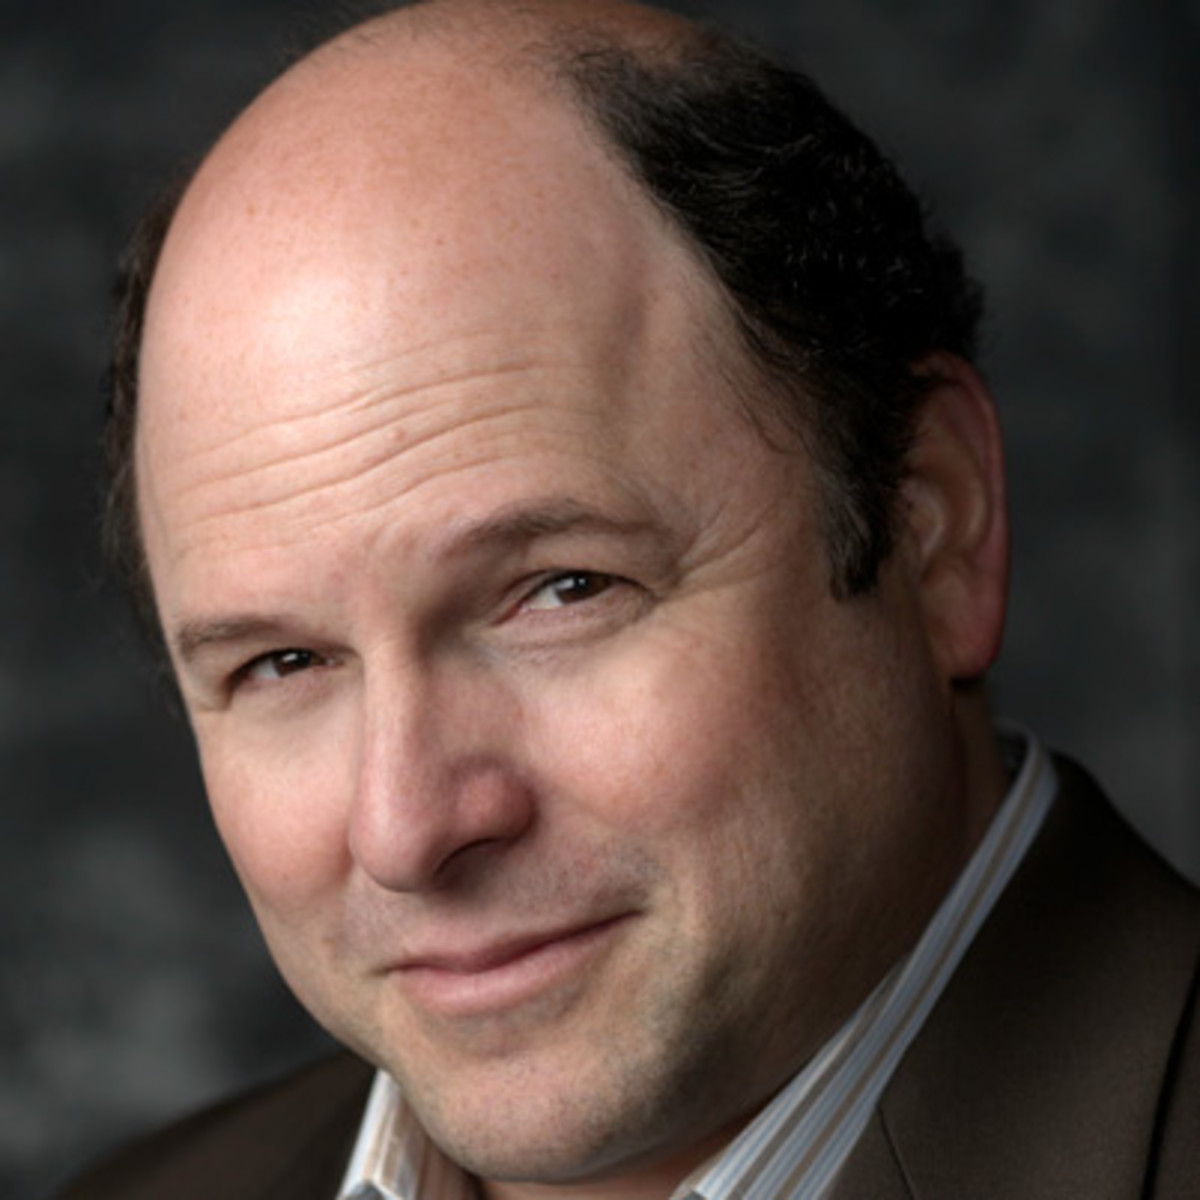 jason alexander theater actor comedian television